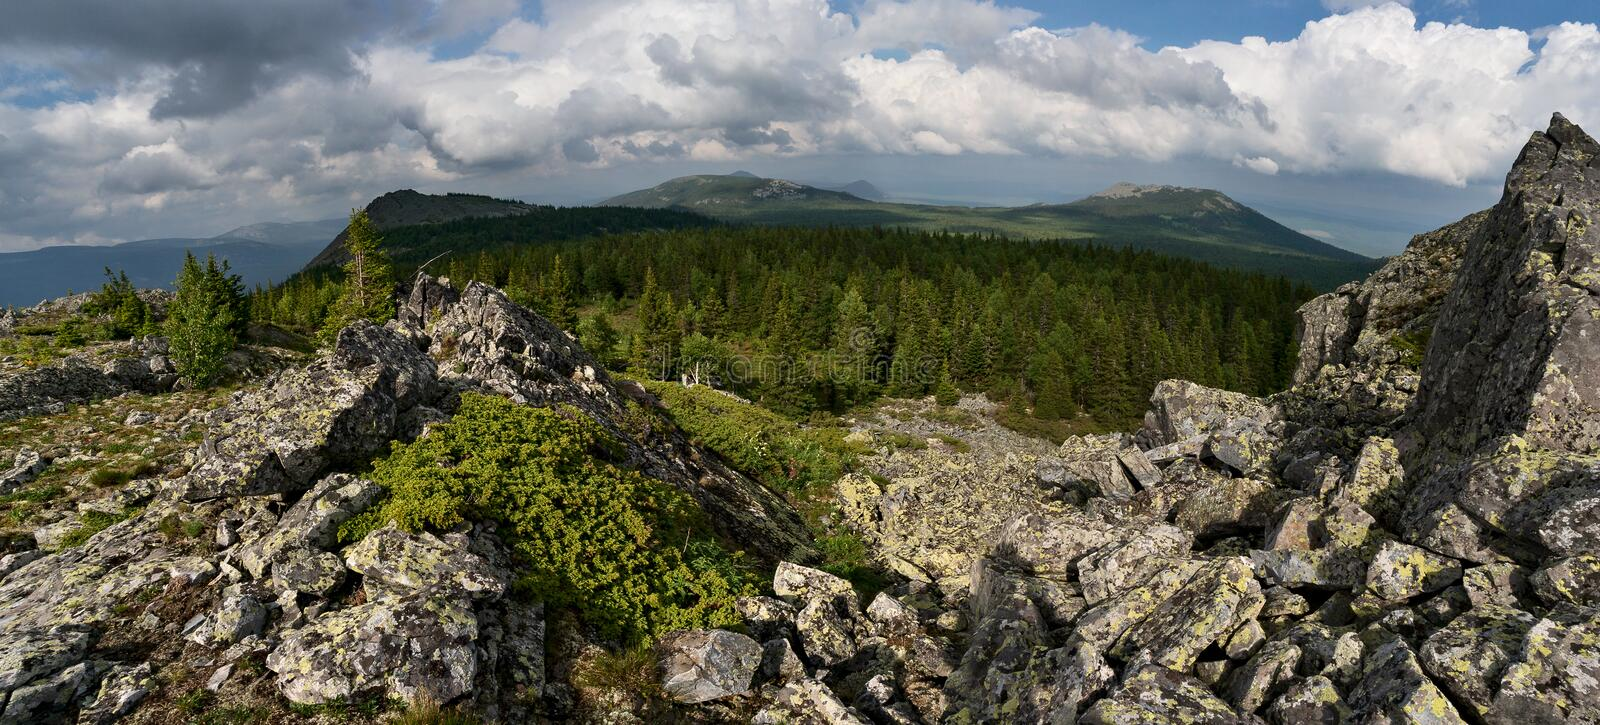 Mountains of Southern Urals. Russia stock photography